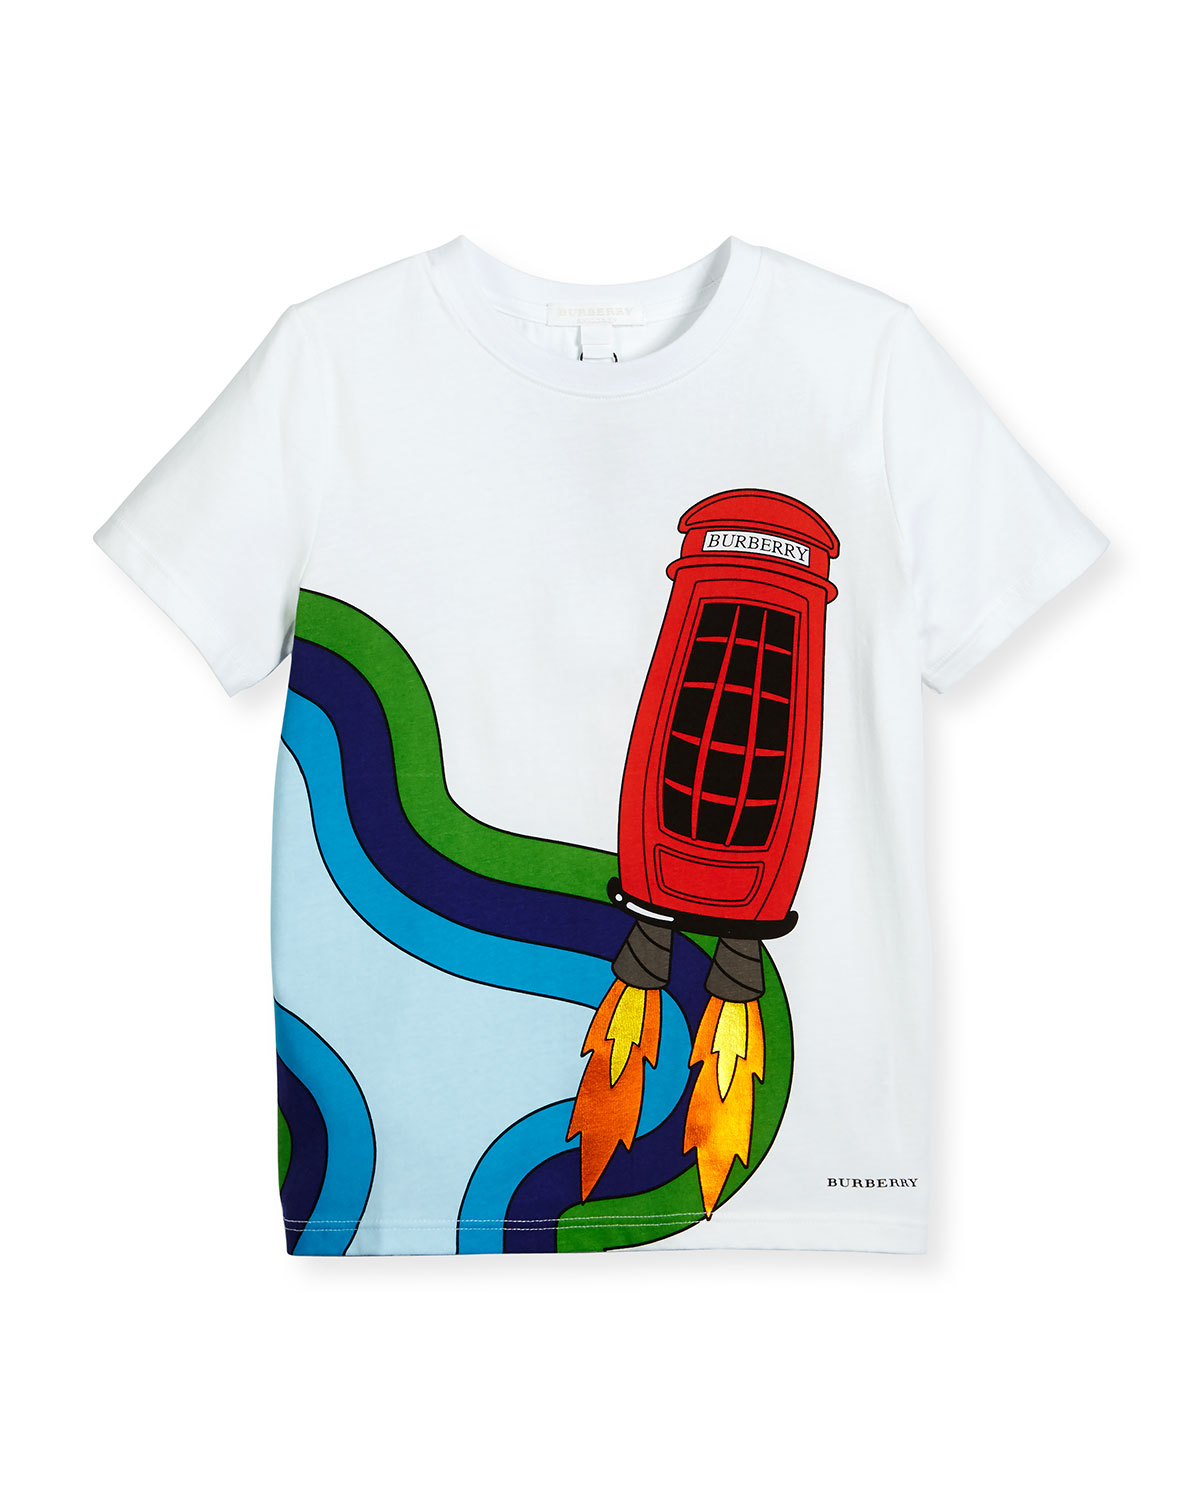 Rocket Telephone Box Jersey Tee, White, Size 4-14